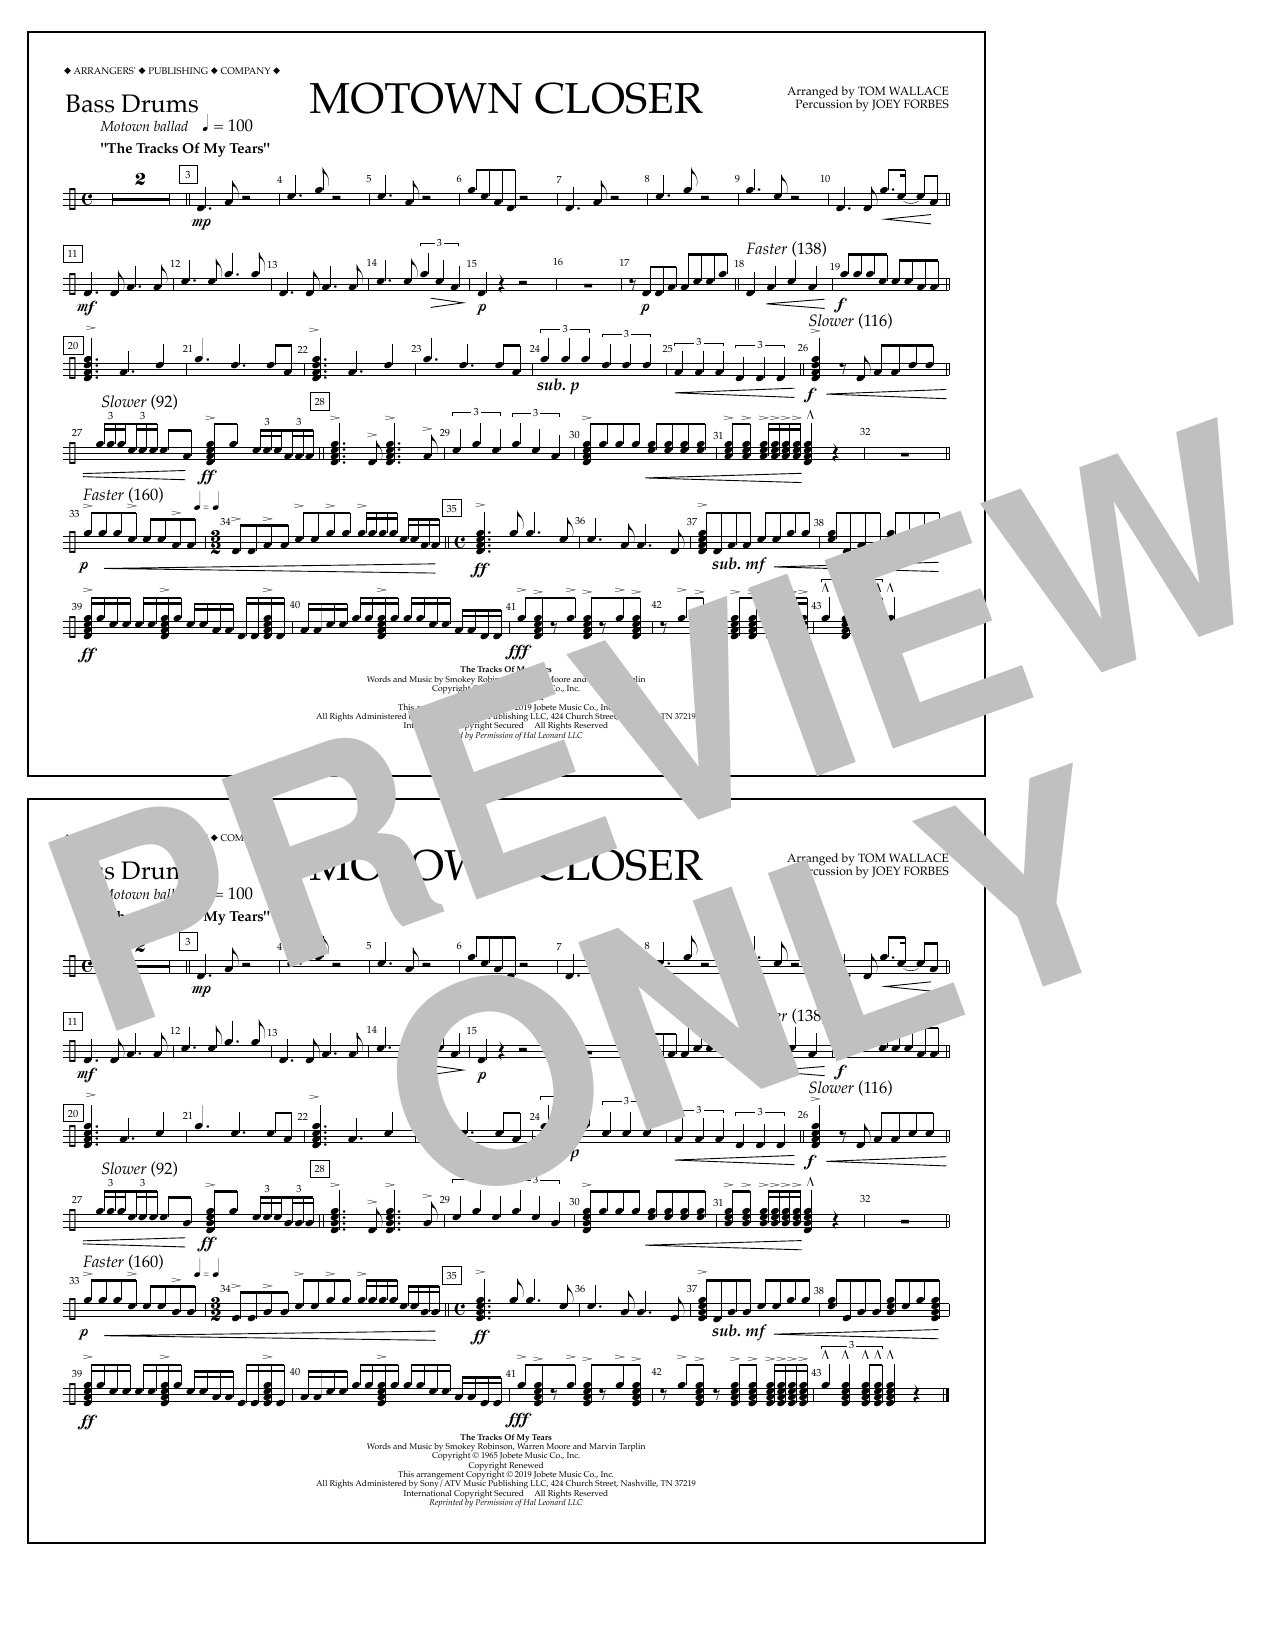 Smokey Robinson Motown Closer (arr. Tom Wallace) - Bass Drums sheet music notes and chords. Download Printable PDF.